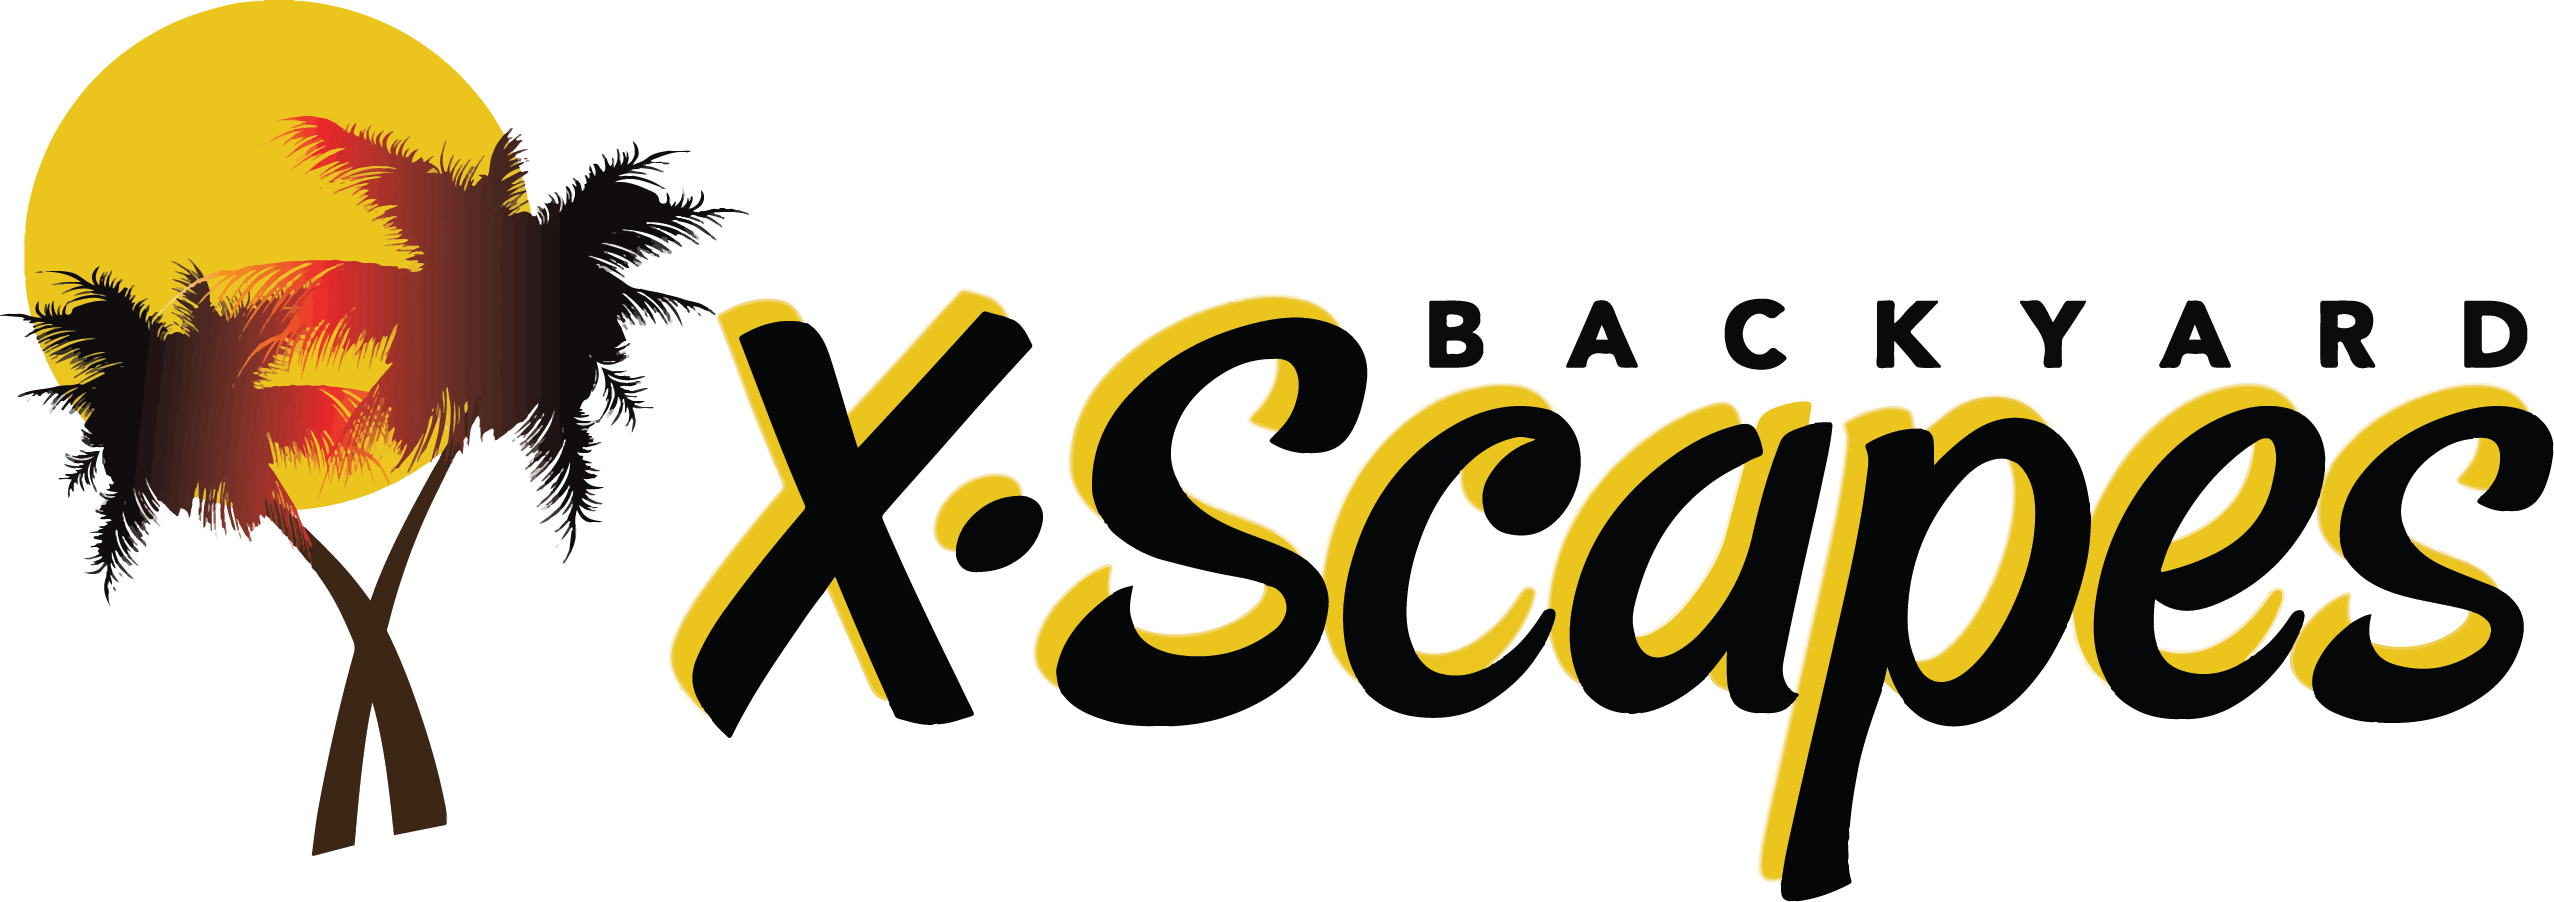 Backyard X-Scapes Coupon Codes August 2021